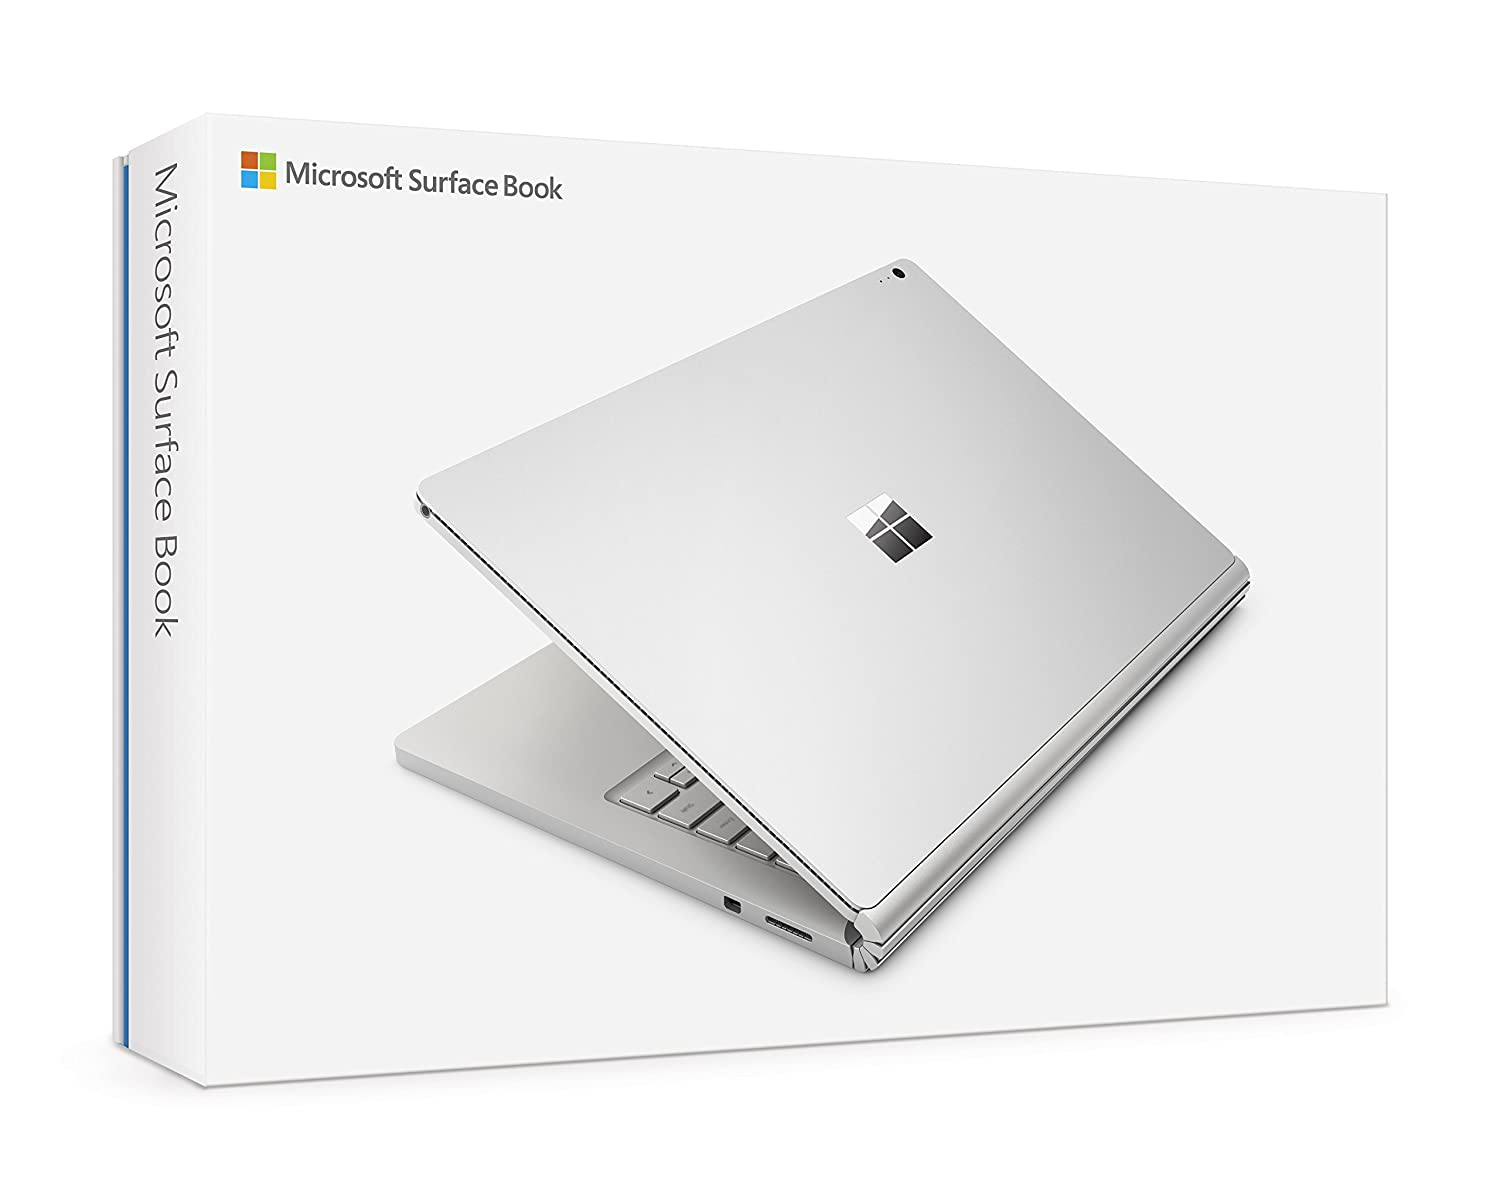 Microsoft Surface Book 1 Tb Ssd 16 Gb Ram Intel Core 4 I7 8gb 256gb Nvidia Geforce Graphics Computers Accessories